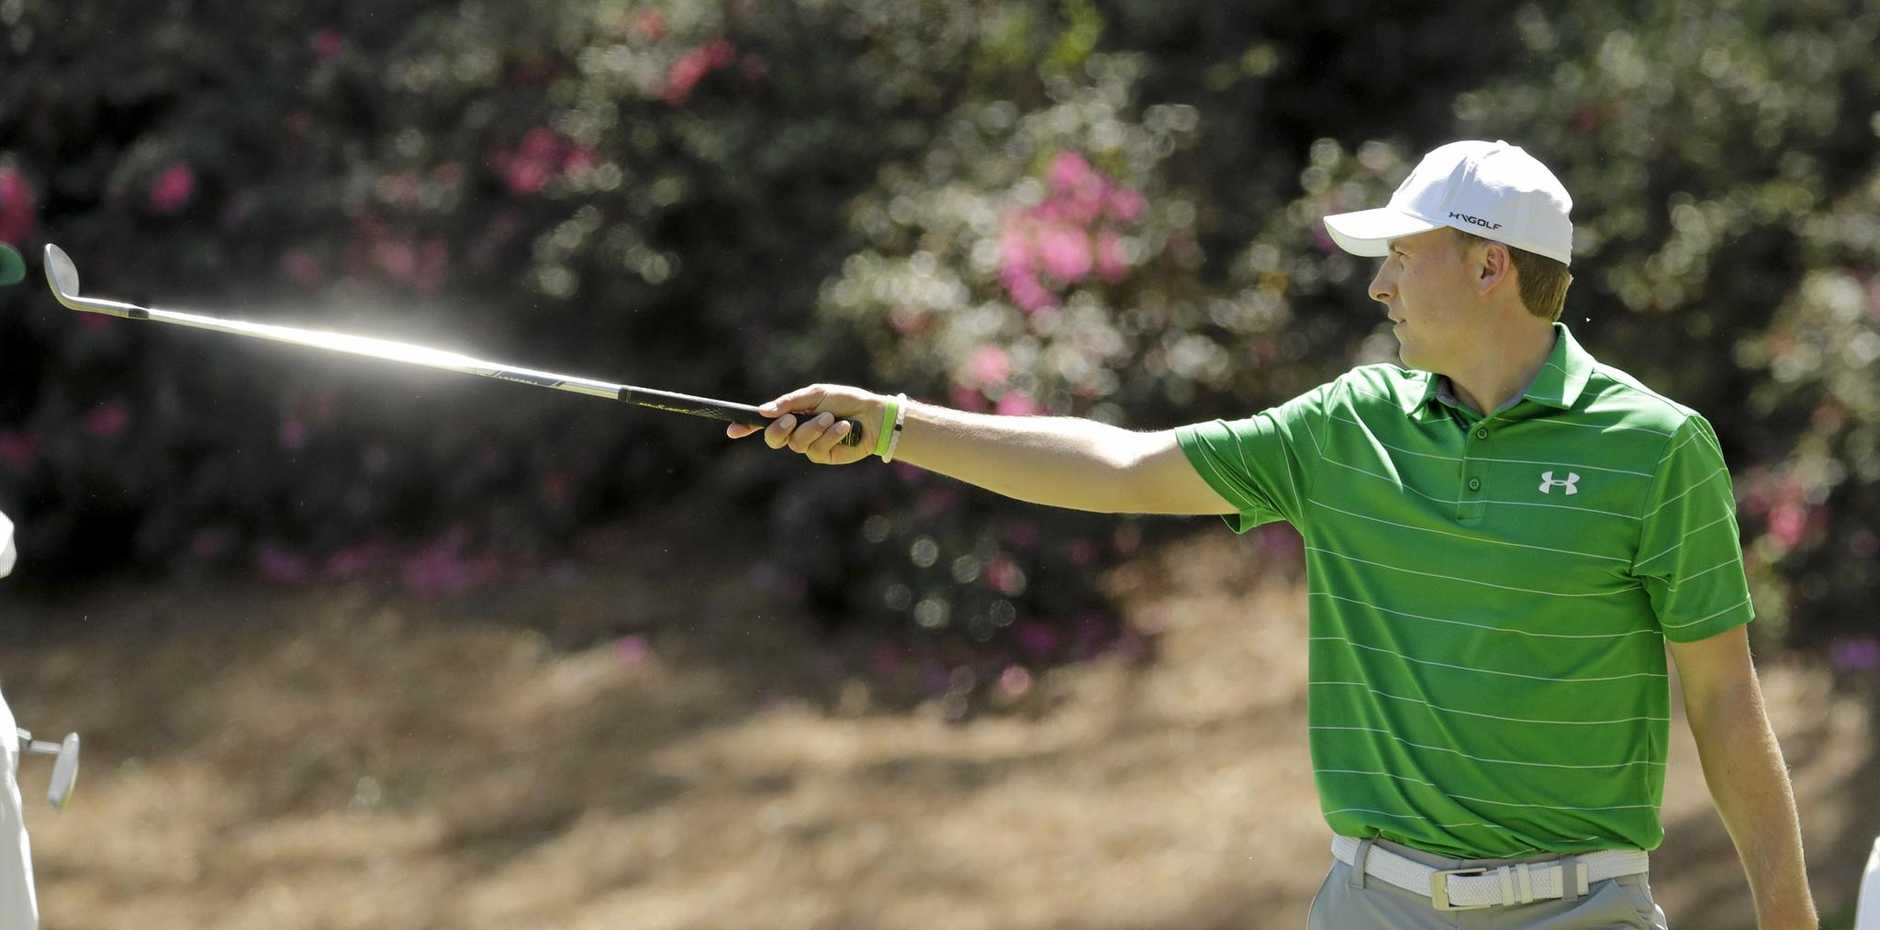 Jordan Spieth is ready for redemption at the Masters.